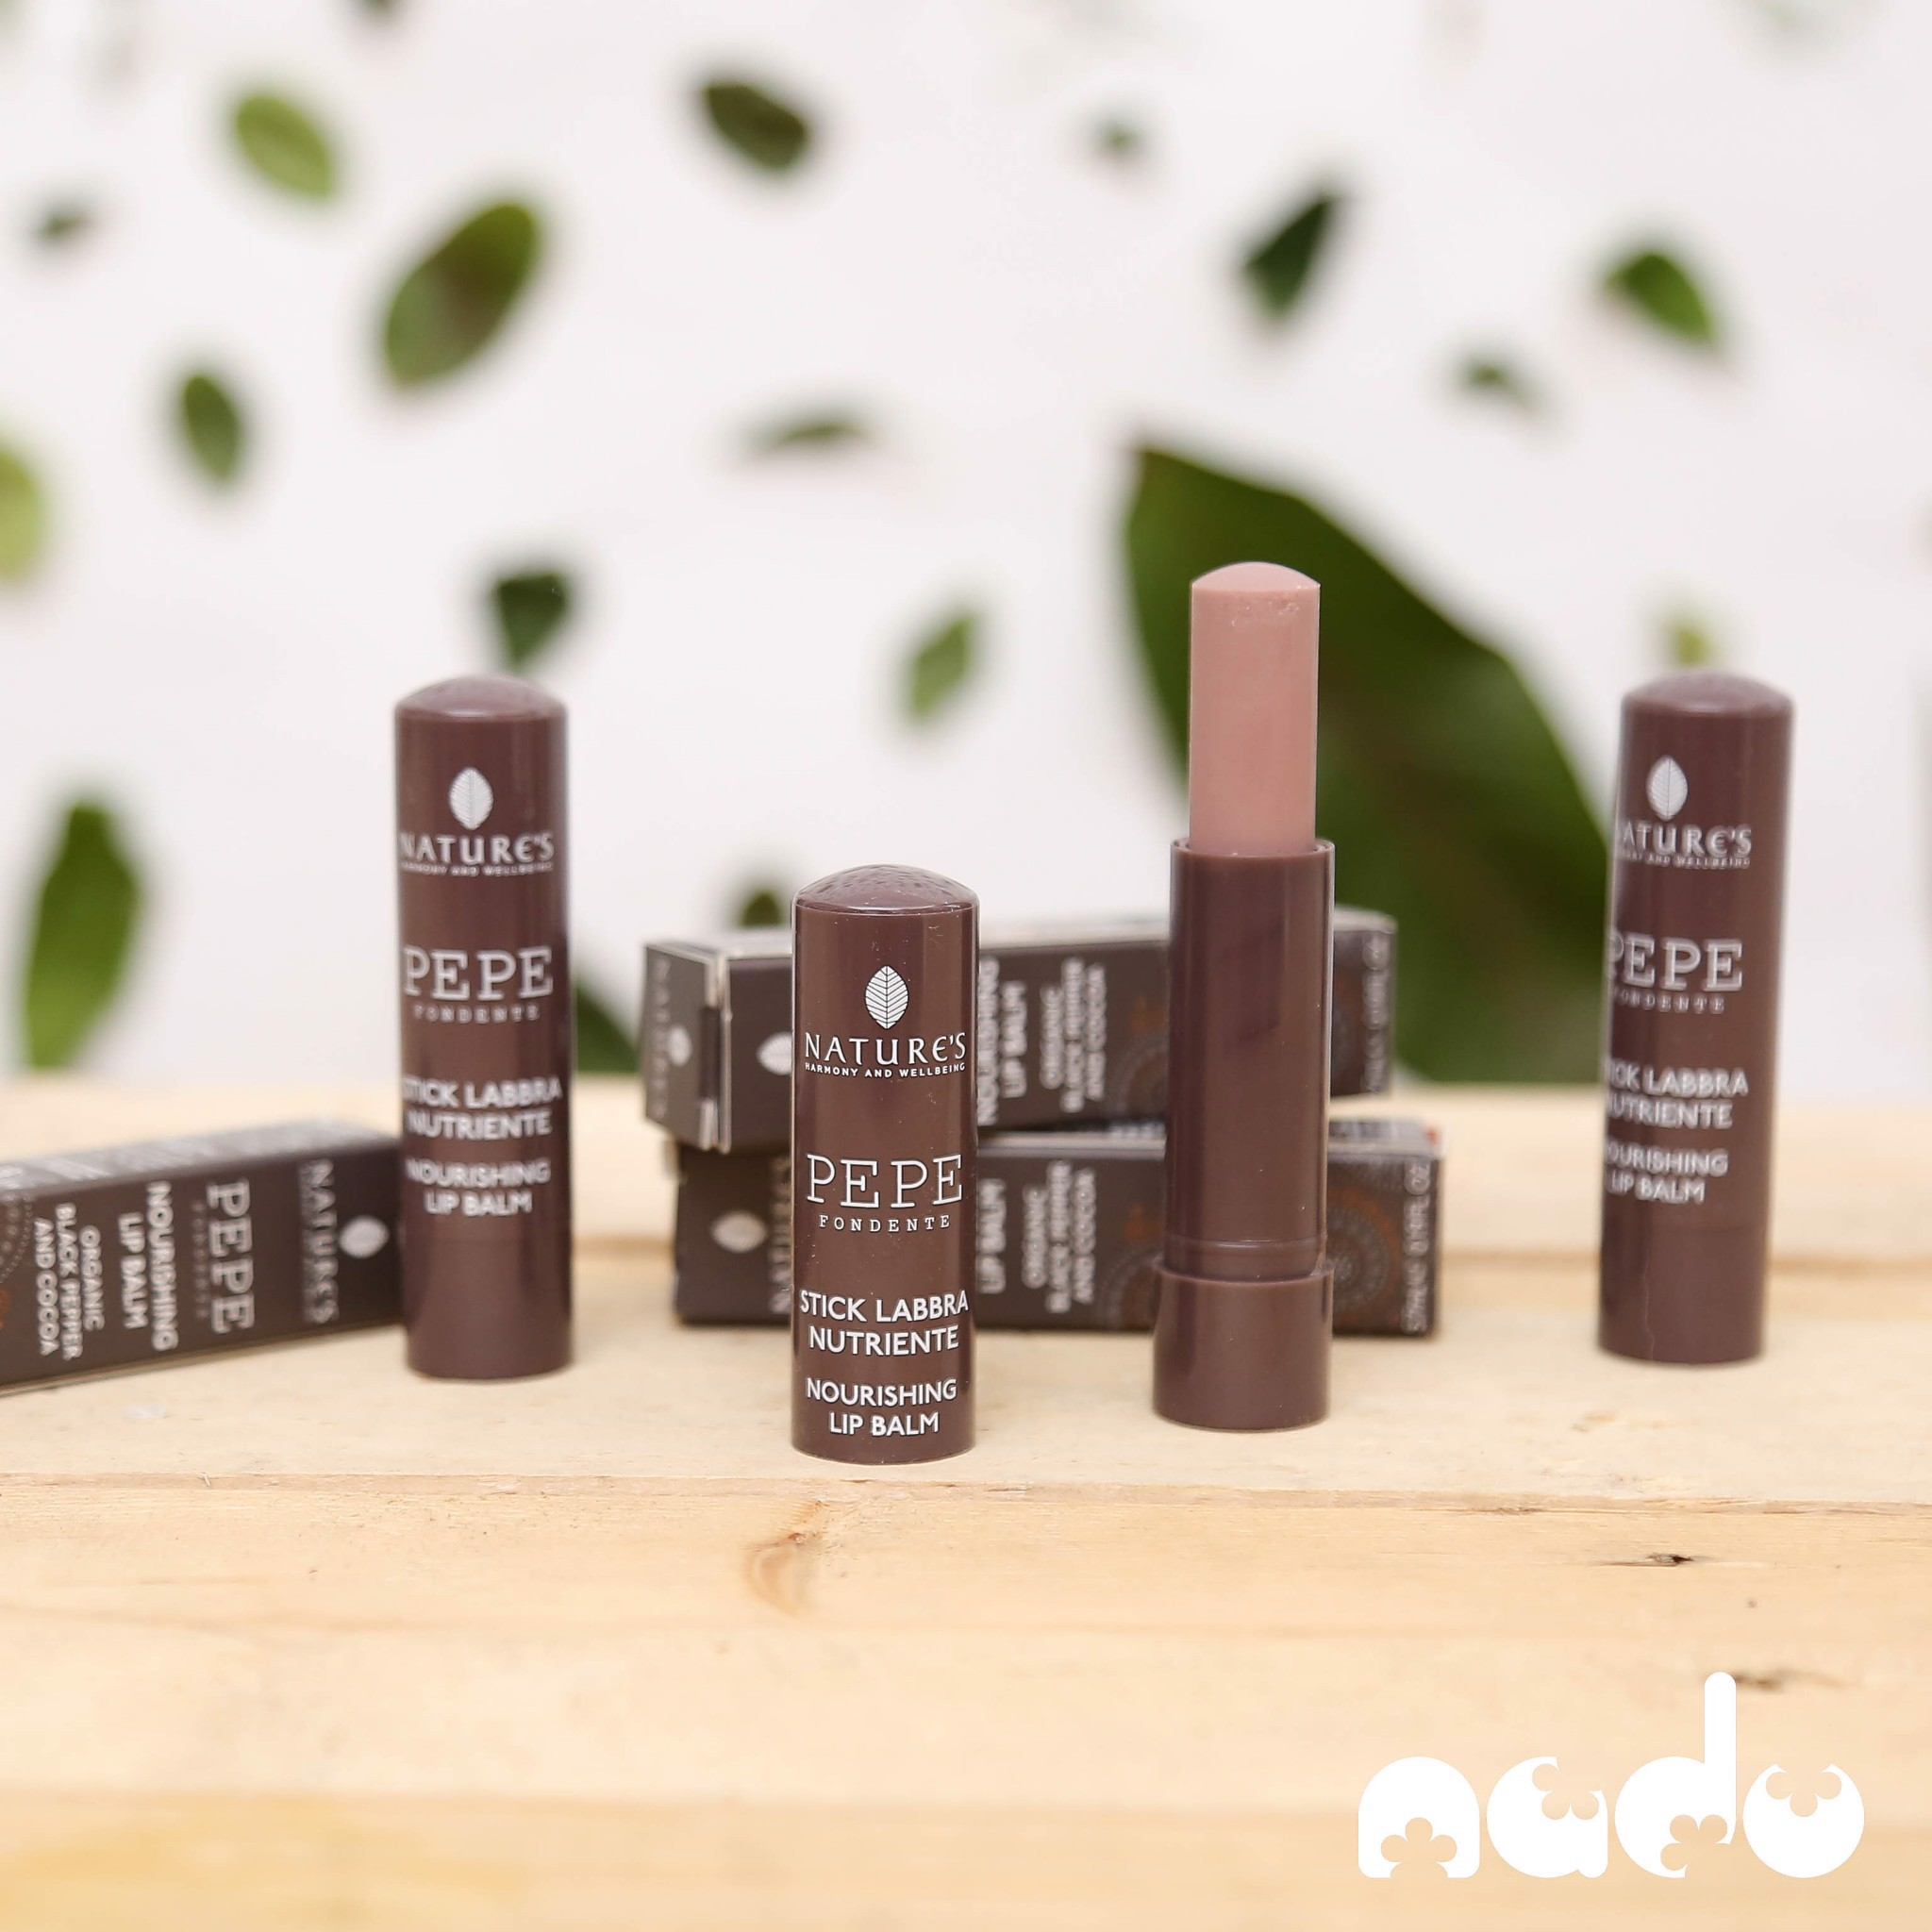 NATURE'S PEPE NOURISHING LIP BALM